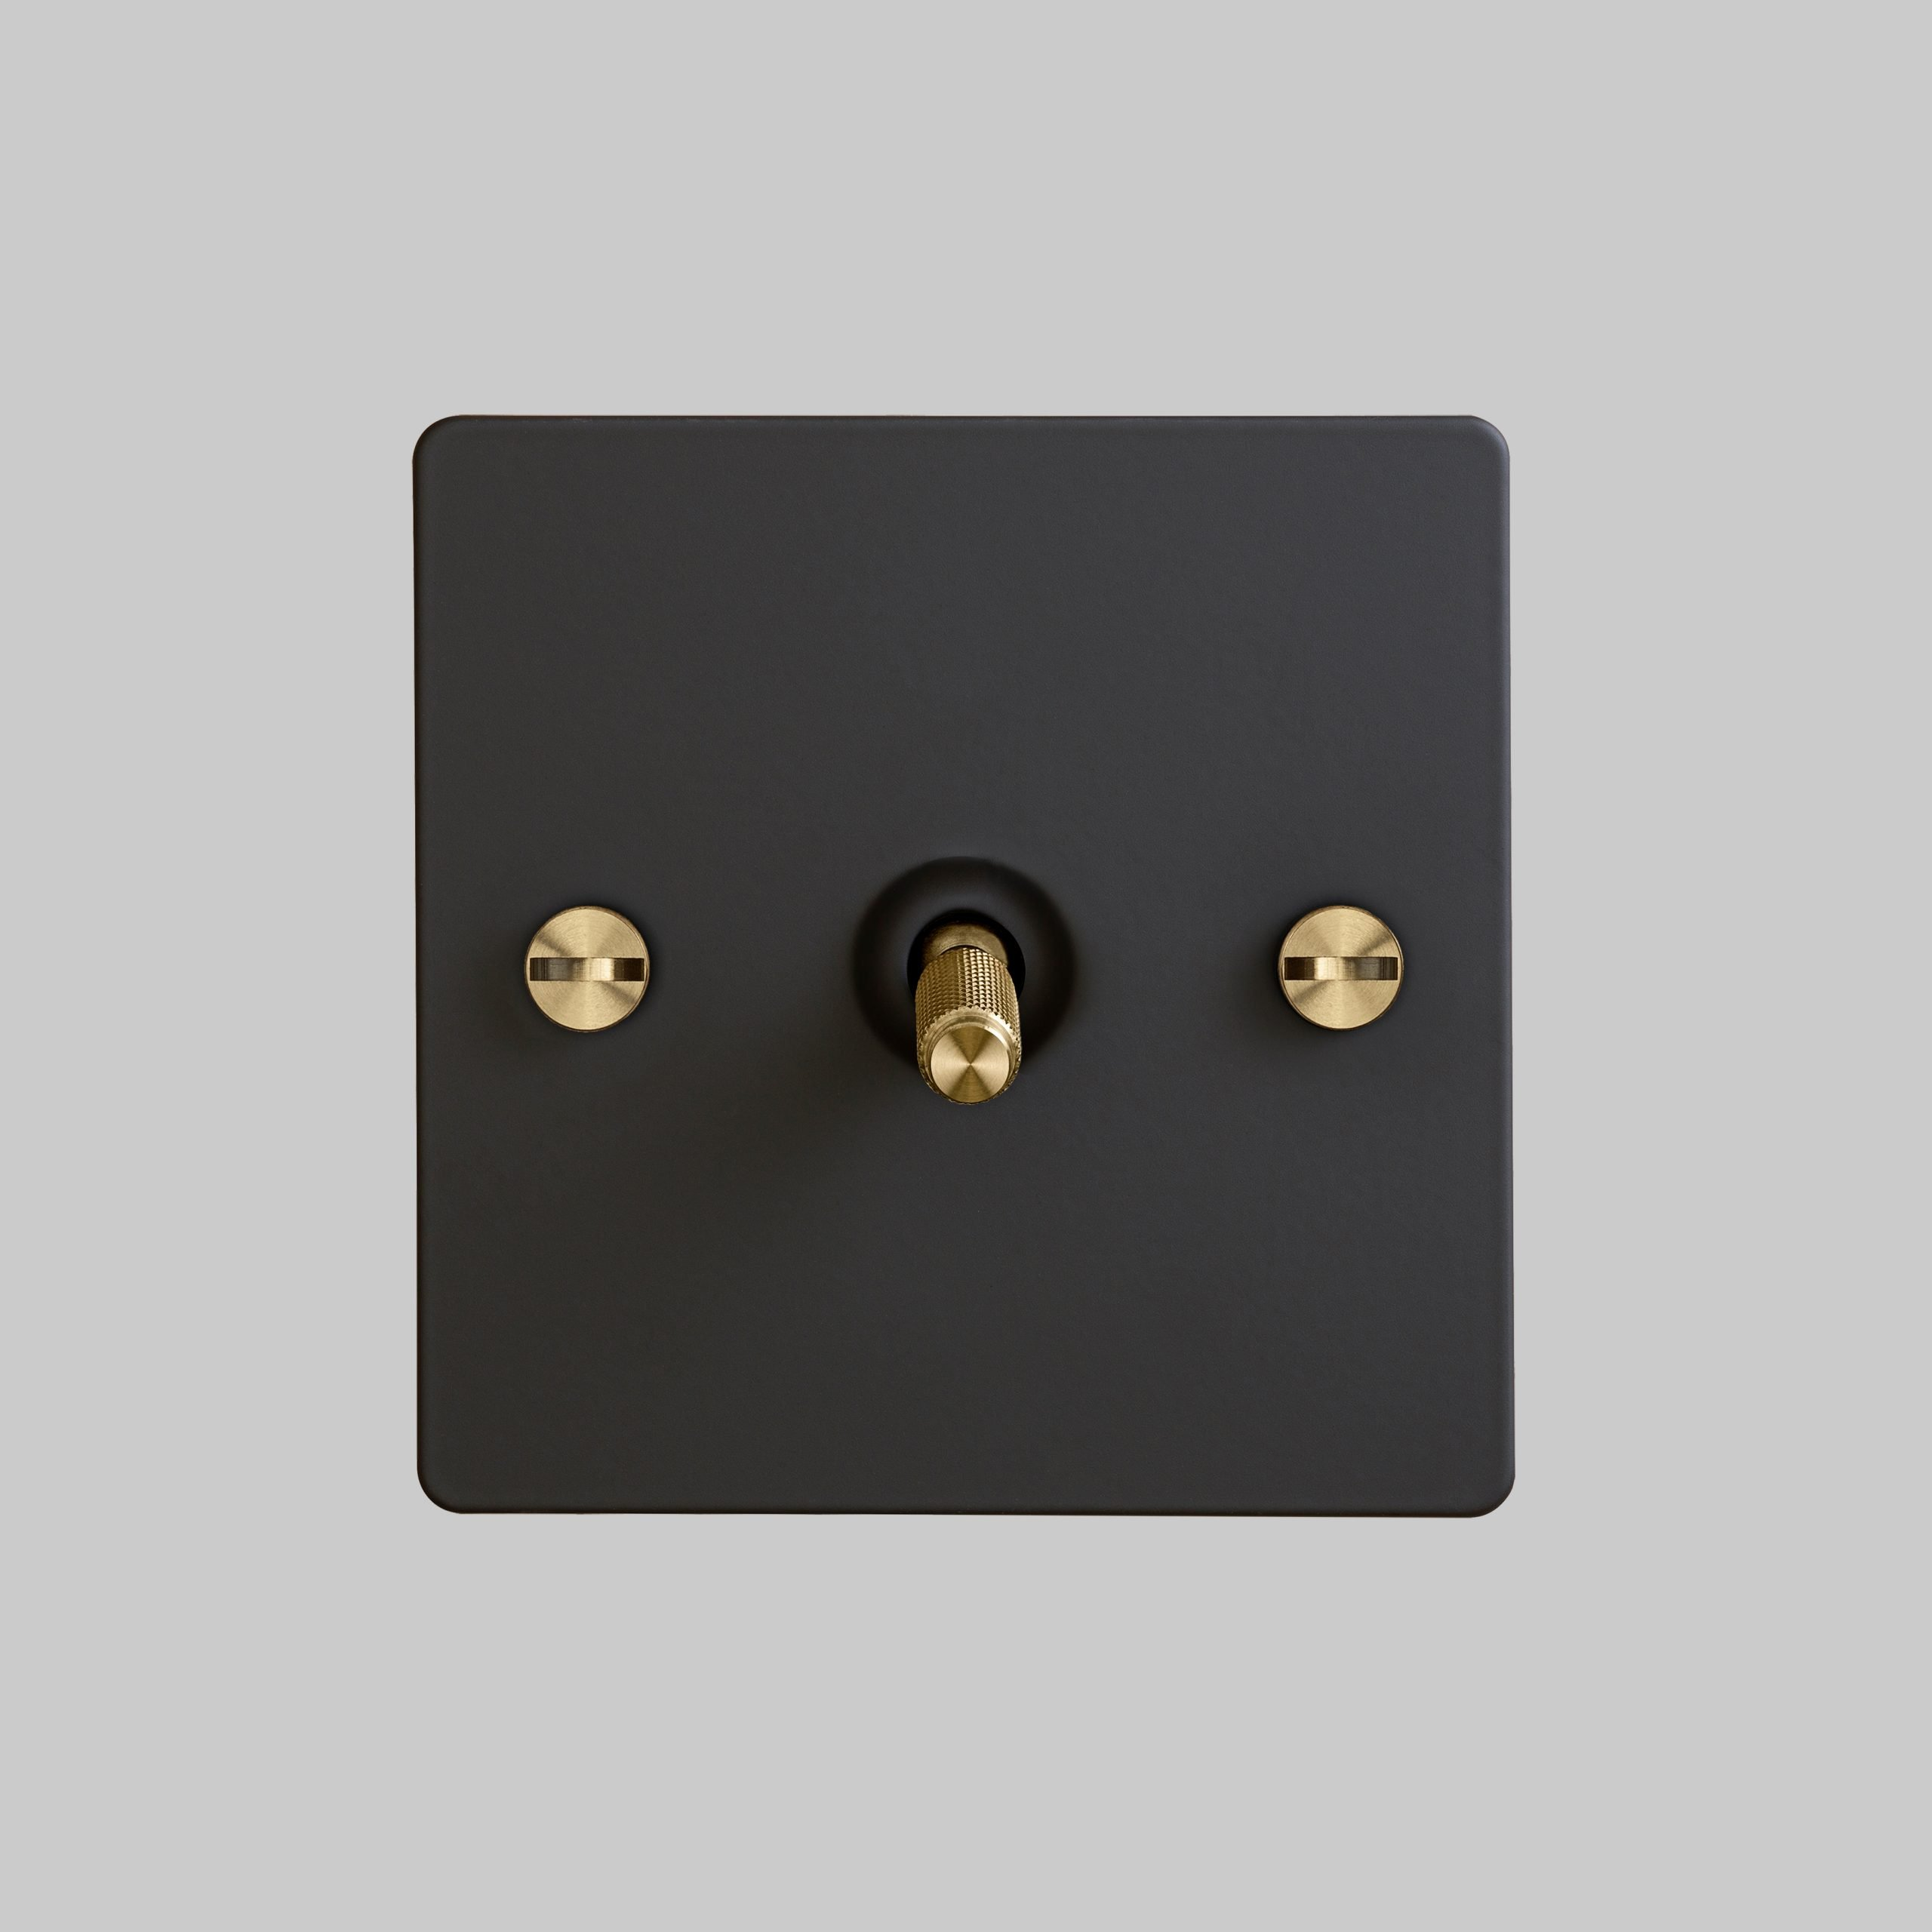 2. 1G_Toggle_Front_Black_Brass